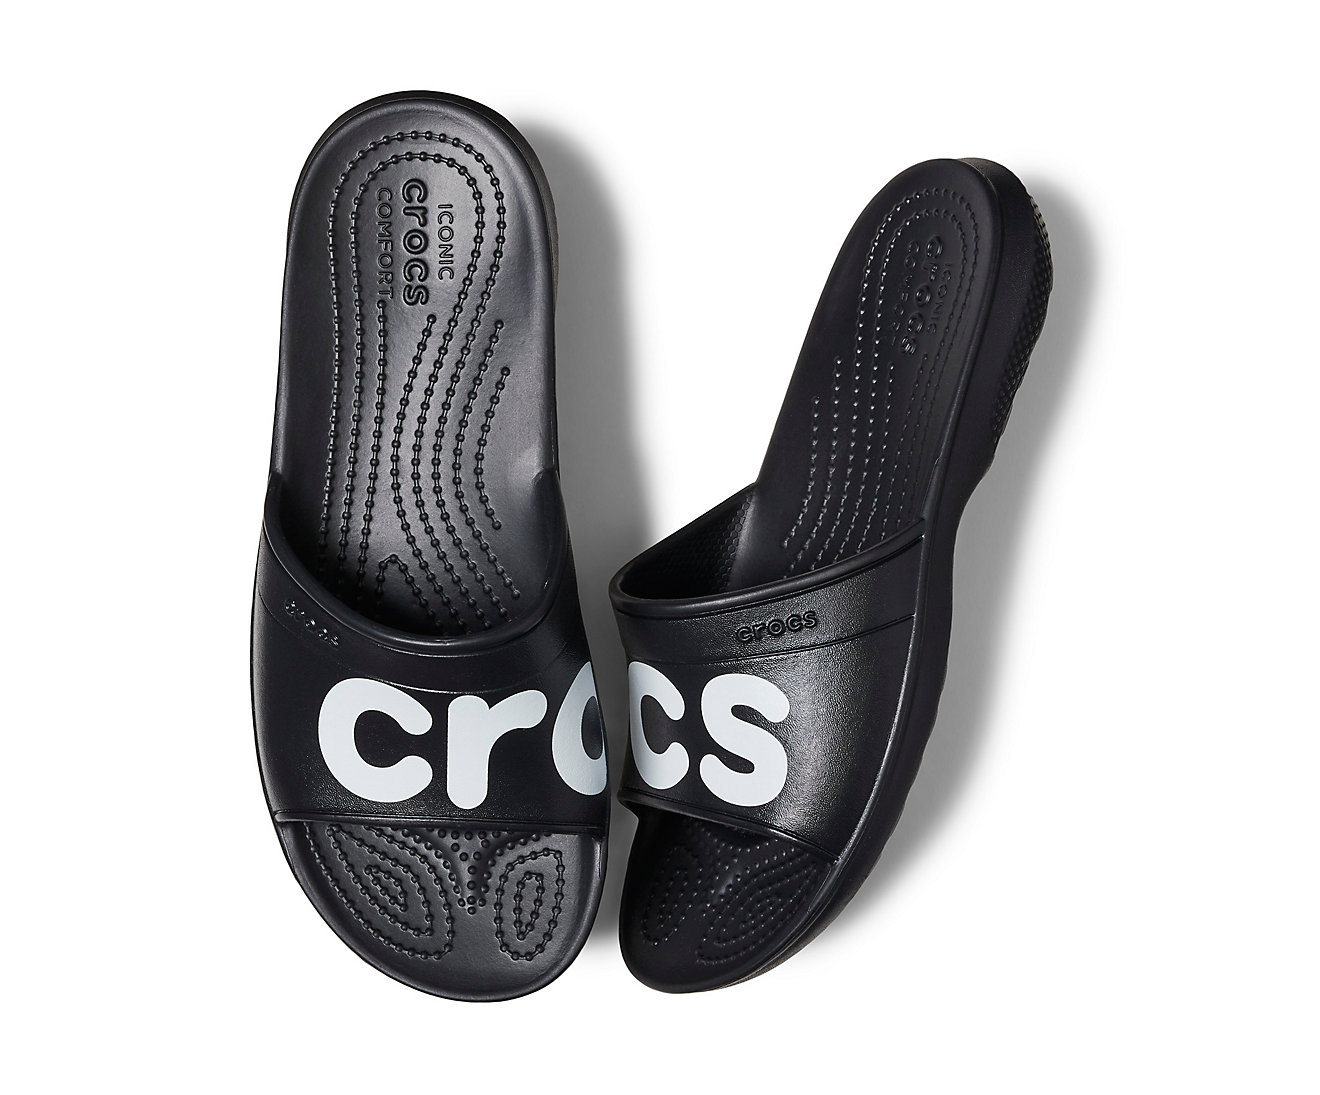 edf9e21ee8 Crocs Black Unisex Slippers Classic Graphic Slide Black   White ...